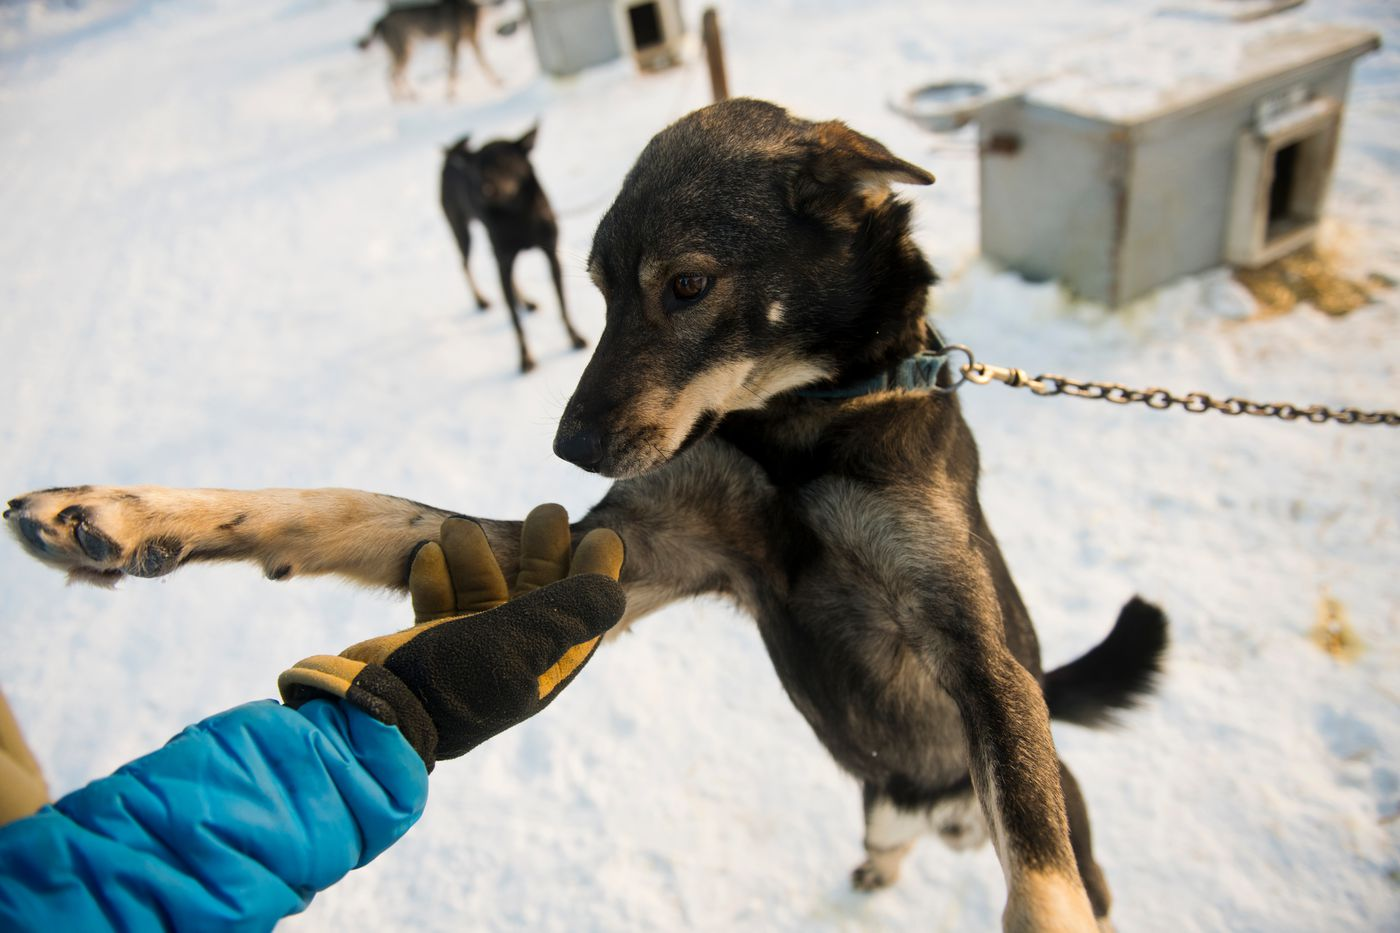 Musher Tim Pappas greets a sled dog named Tim at Happy Trails Kennels in Big Lake on February 25, 2020. (Marc Lester / ADN)